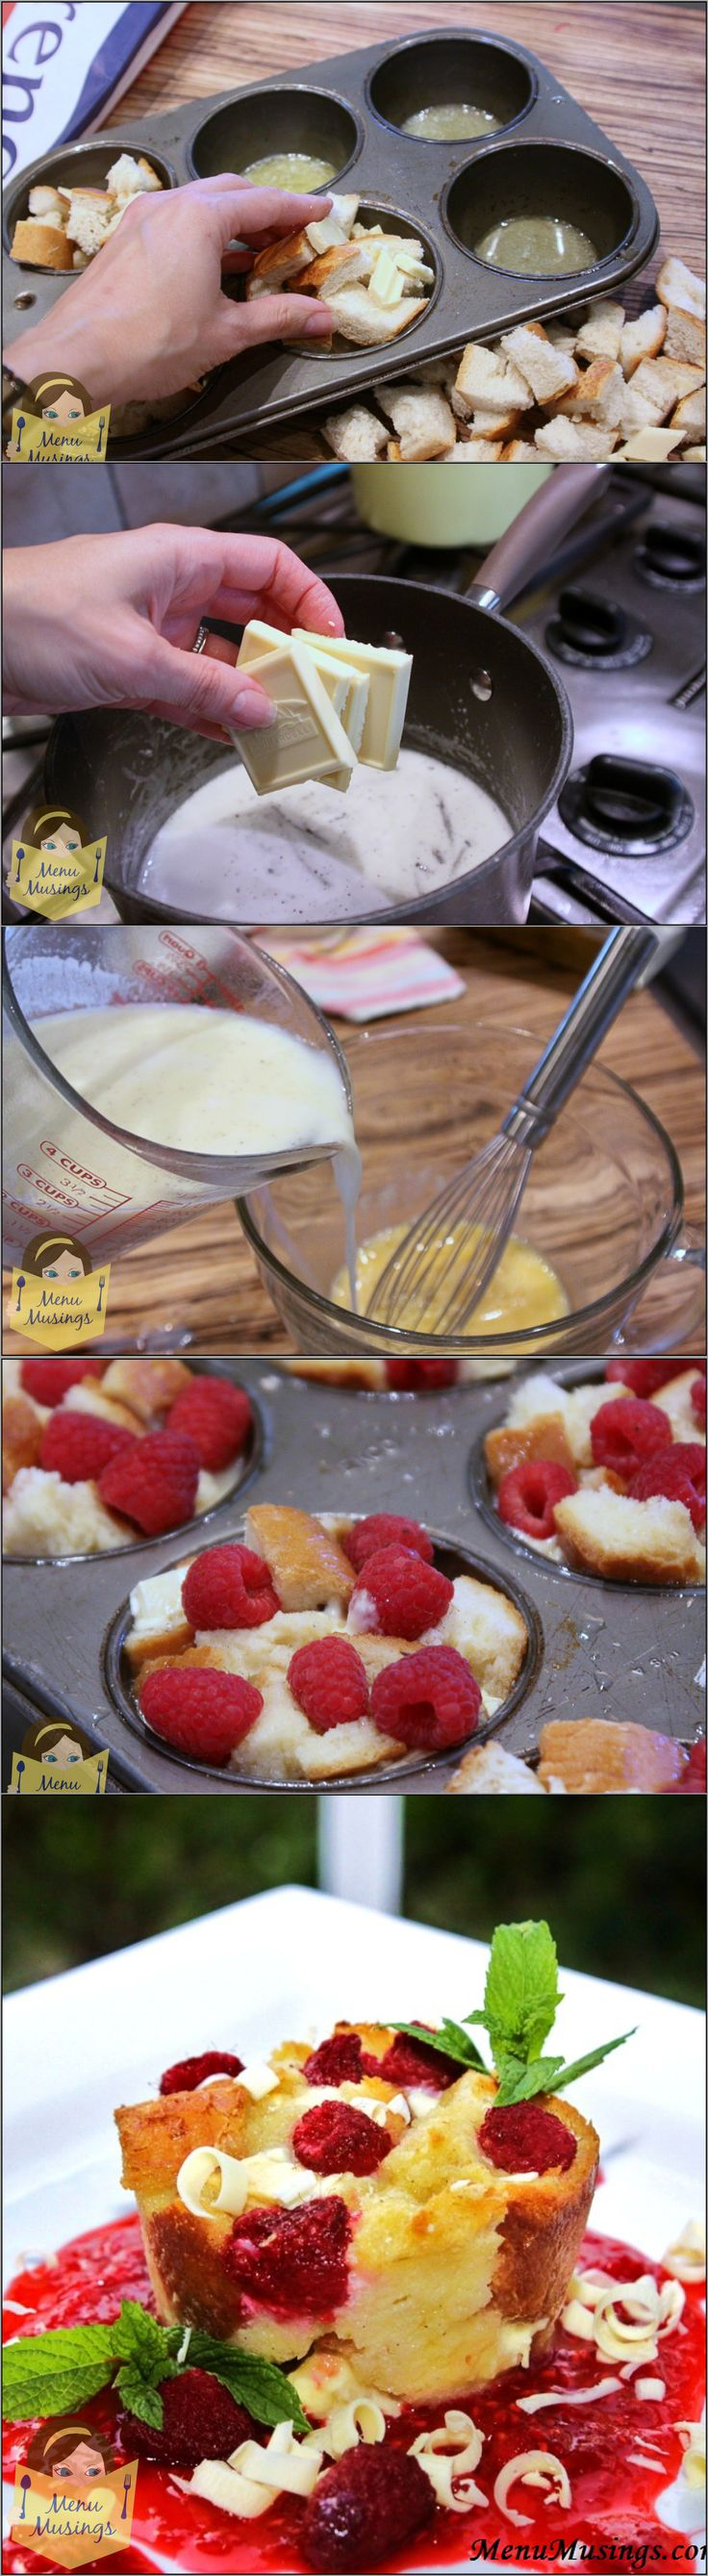 Individual White Chocolate and Raspberry Bread Puddings -  take the basic bread pudding concept and kick it up a couple of notches with the addition of creamy white chocolate and fresh, juicy raspberries... an amazing combination.  And you have built in portion control!  <3  Step-by-step photos.